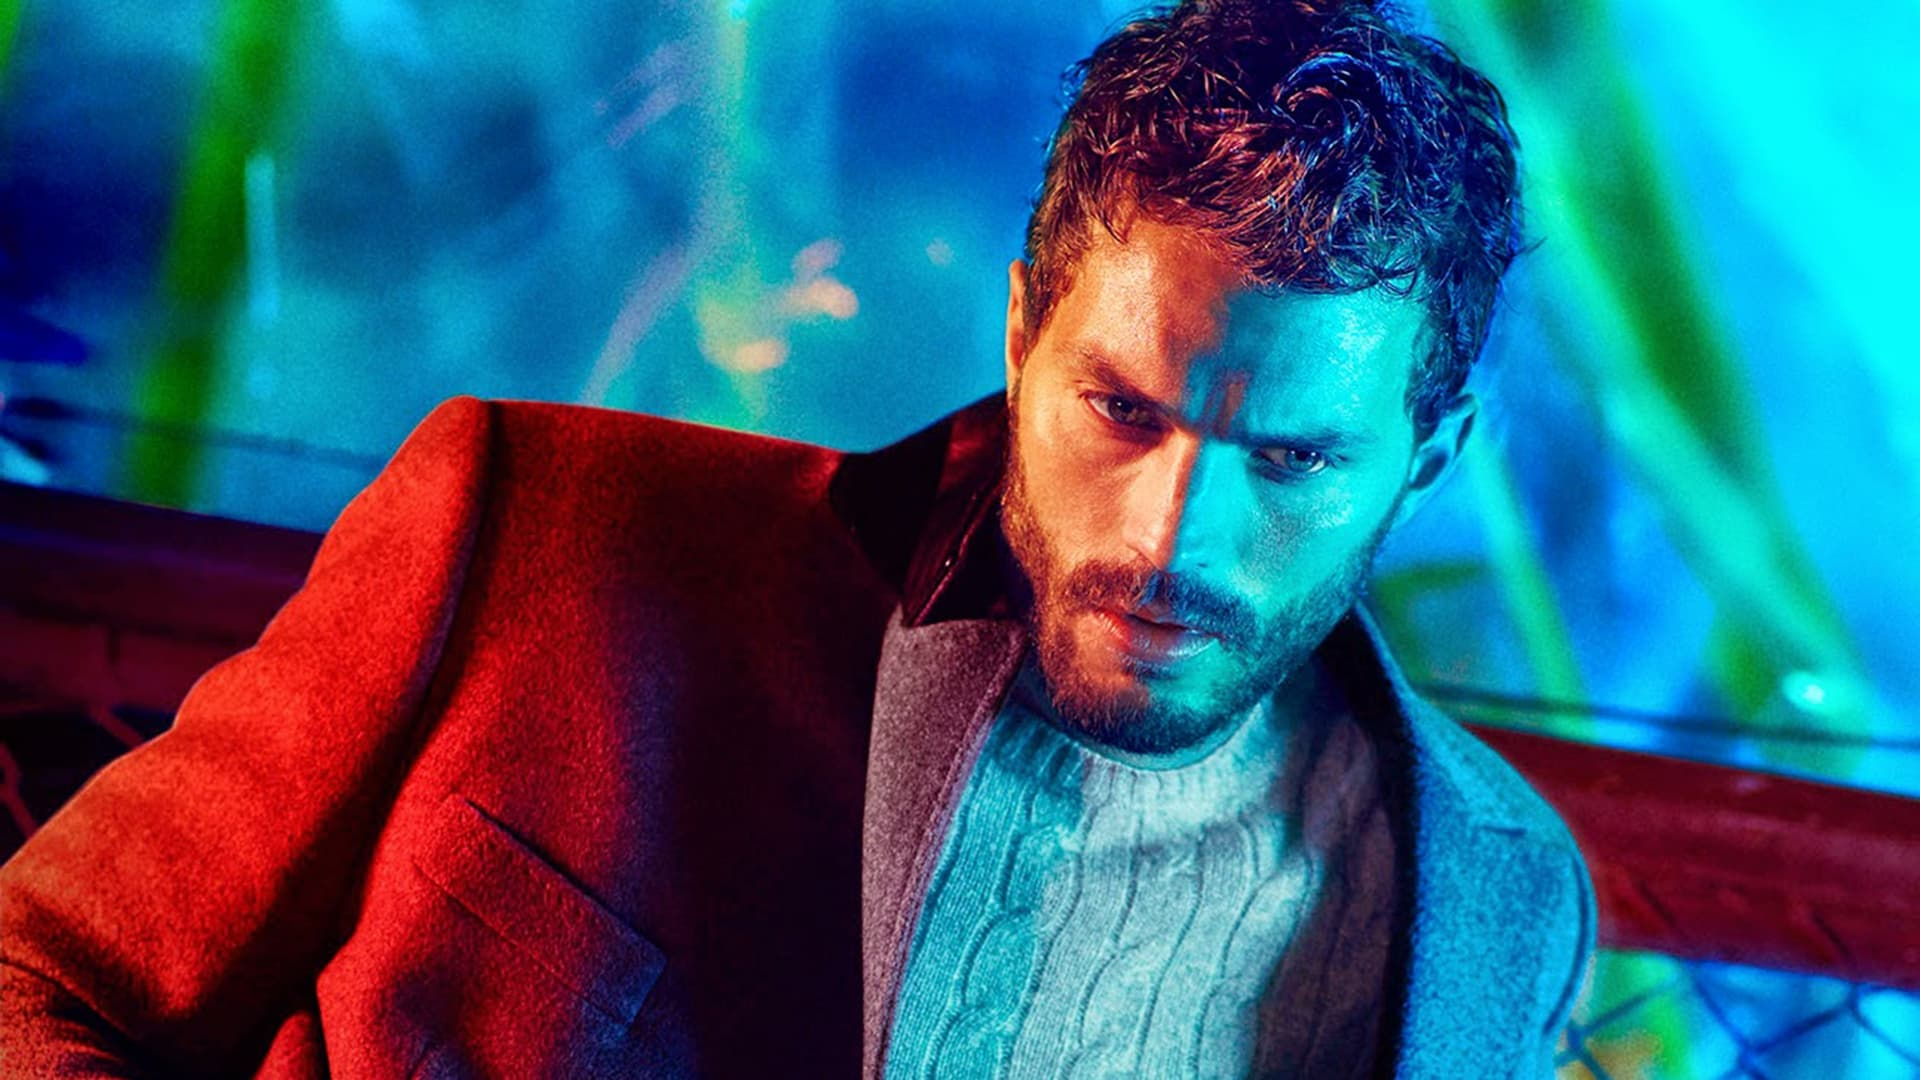 14+ Jamie Dornan Wallpapers HD High Quality Download